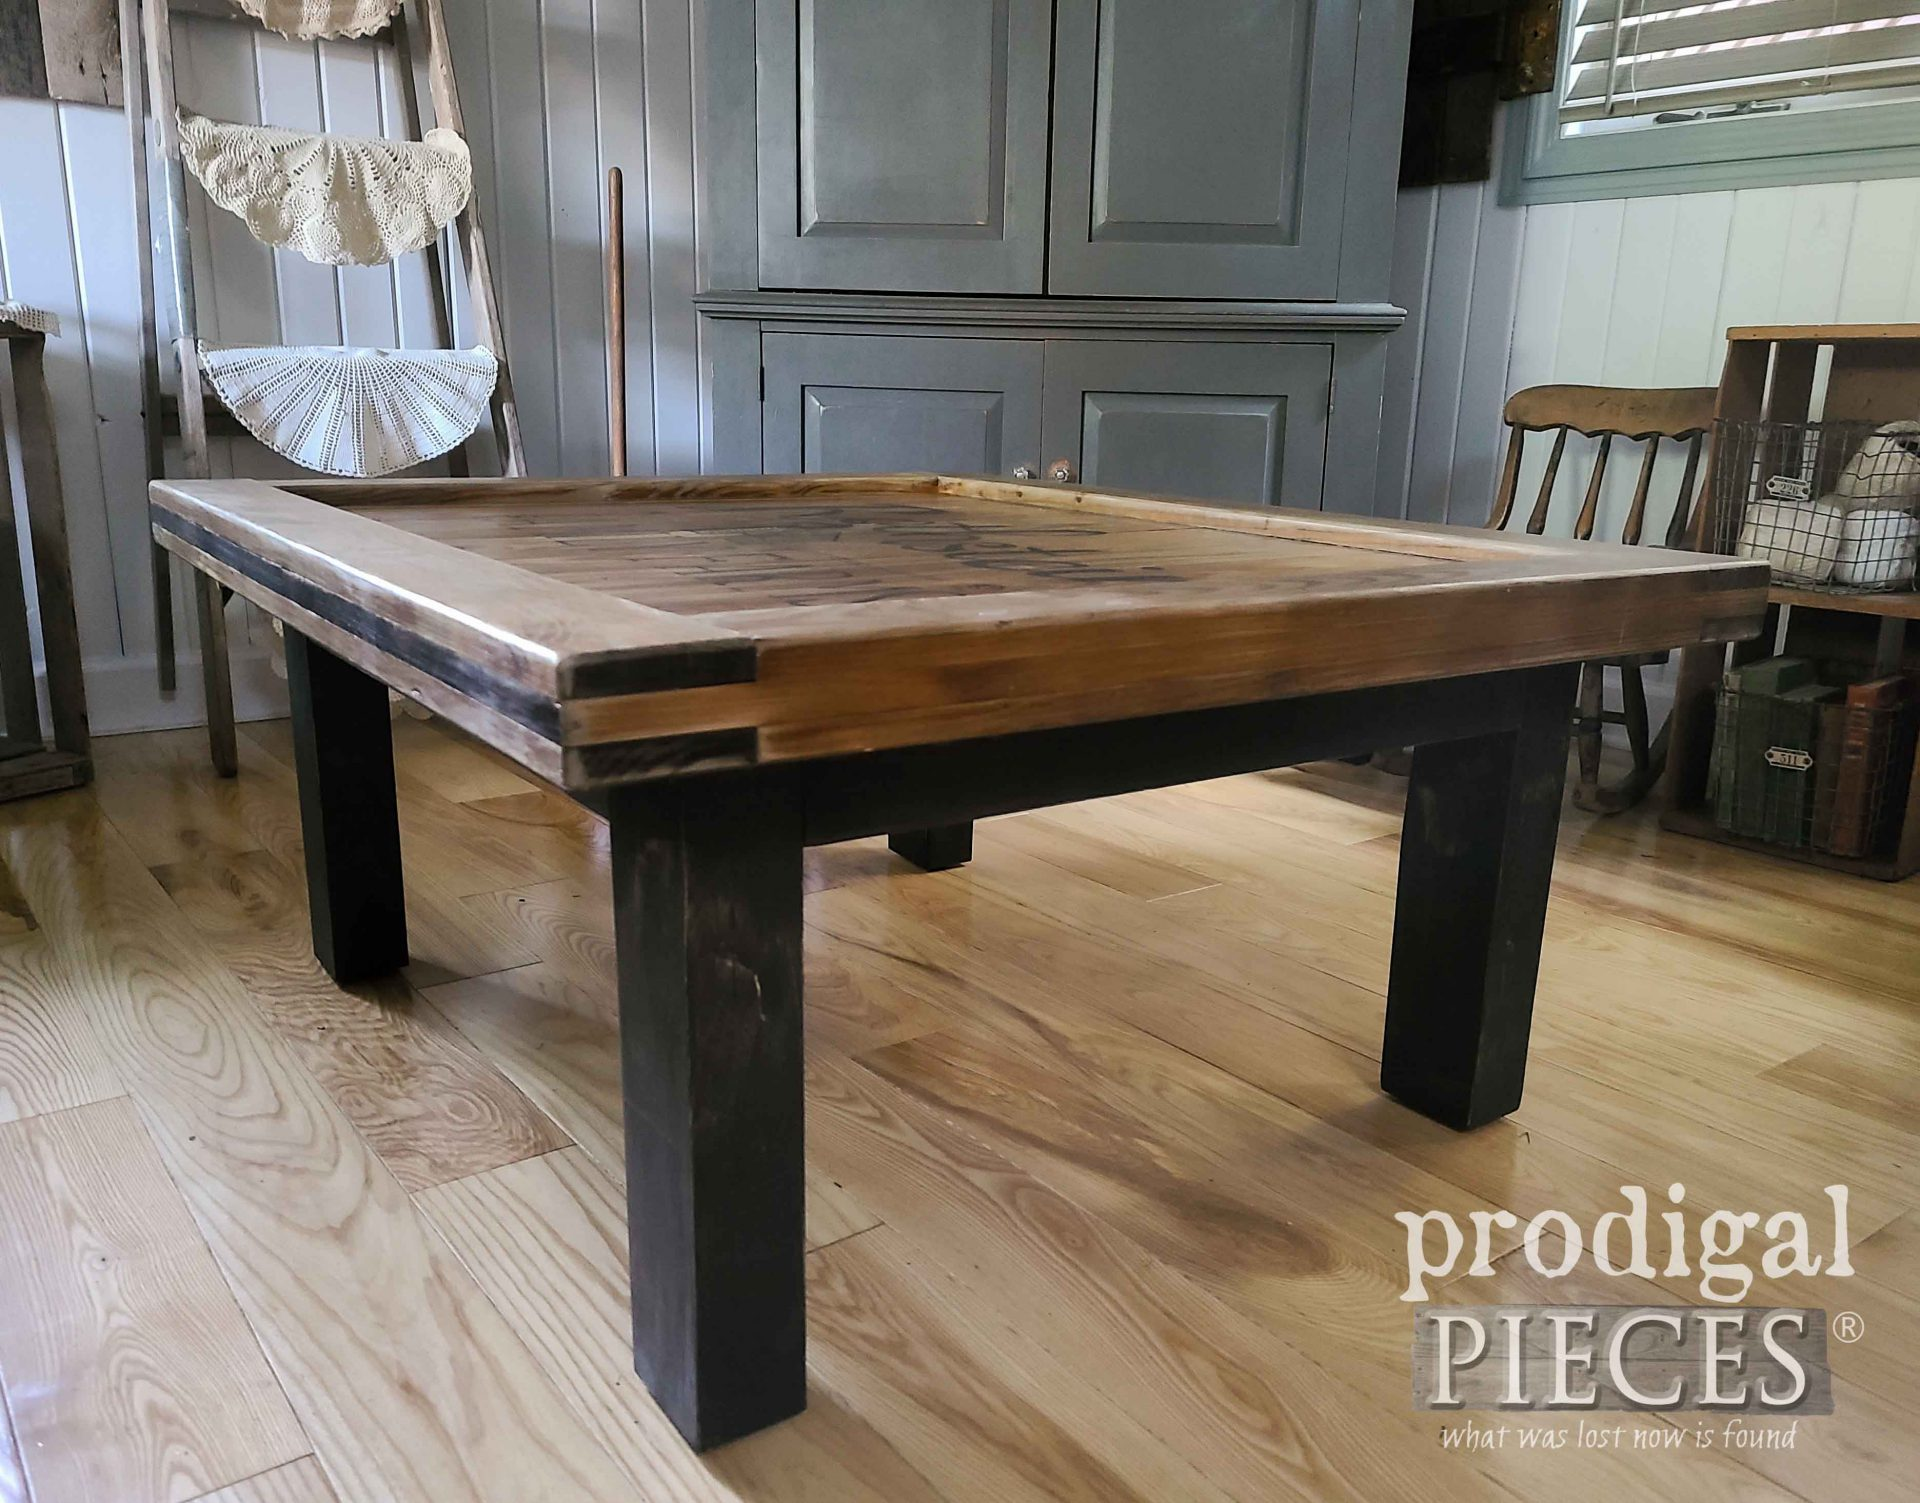 Rustic Wood Coffee Table Built by Larissa of Prodigal Pieces   prodigalpieces.com #prodigalpieces #furniture #home #homedecor #farmhouse